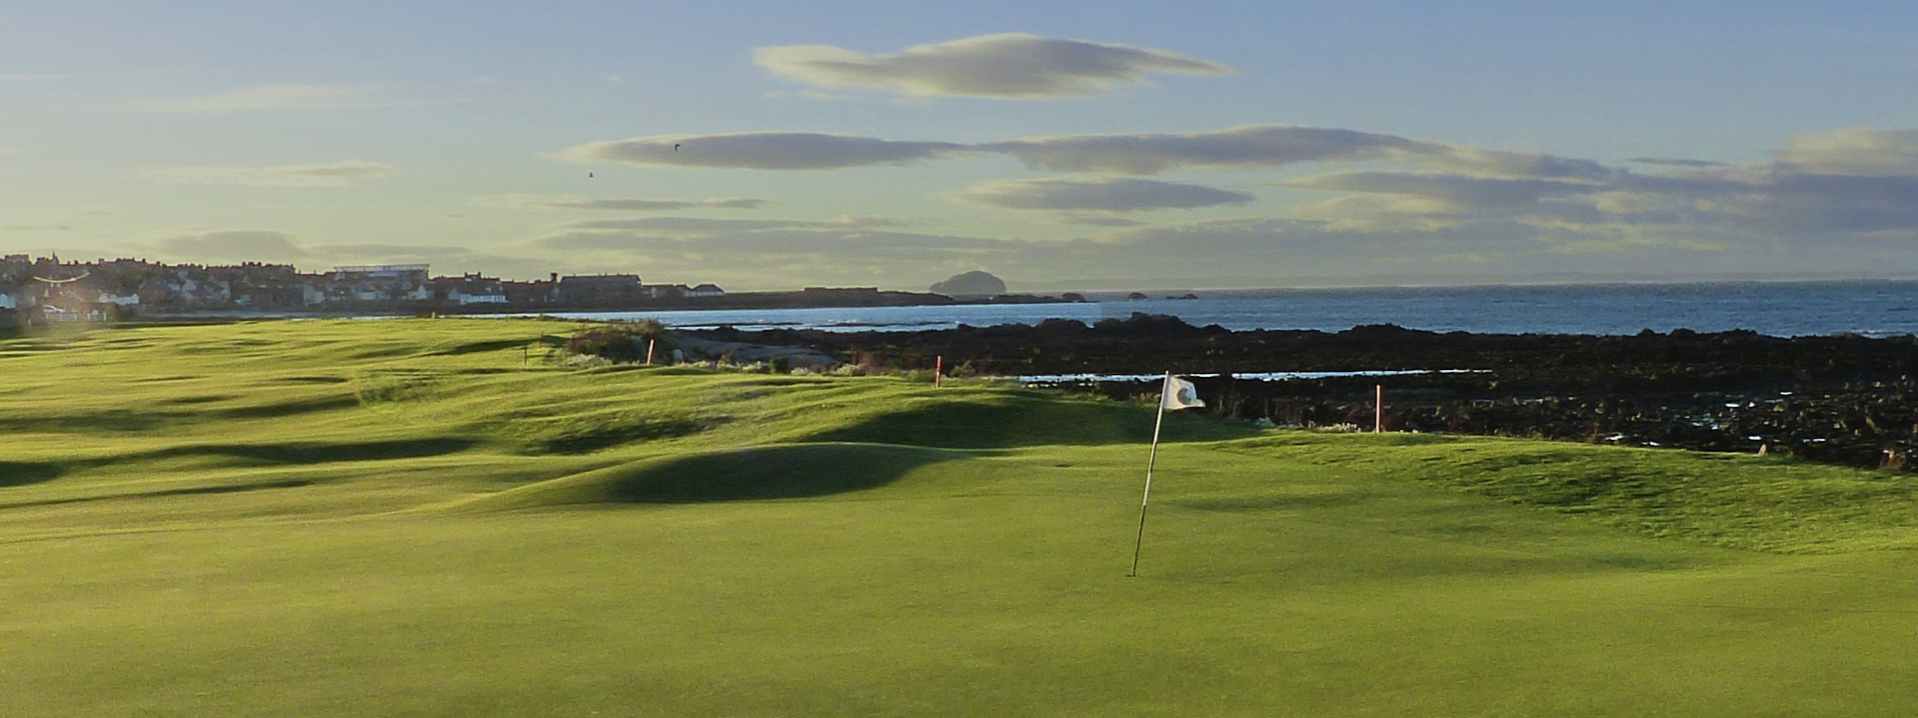 Pretty good image that captures the narrowness pf the course and proximity to the sea. Bass rock way in the distance at North Berwick.